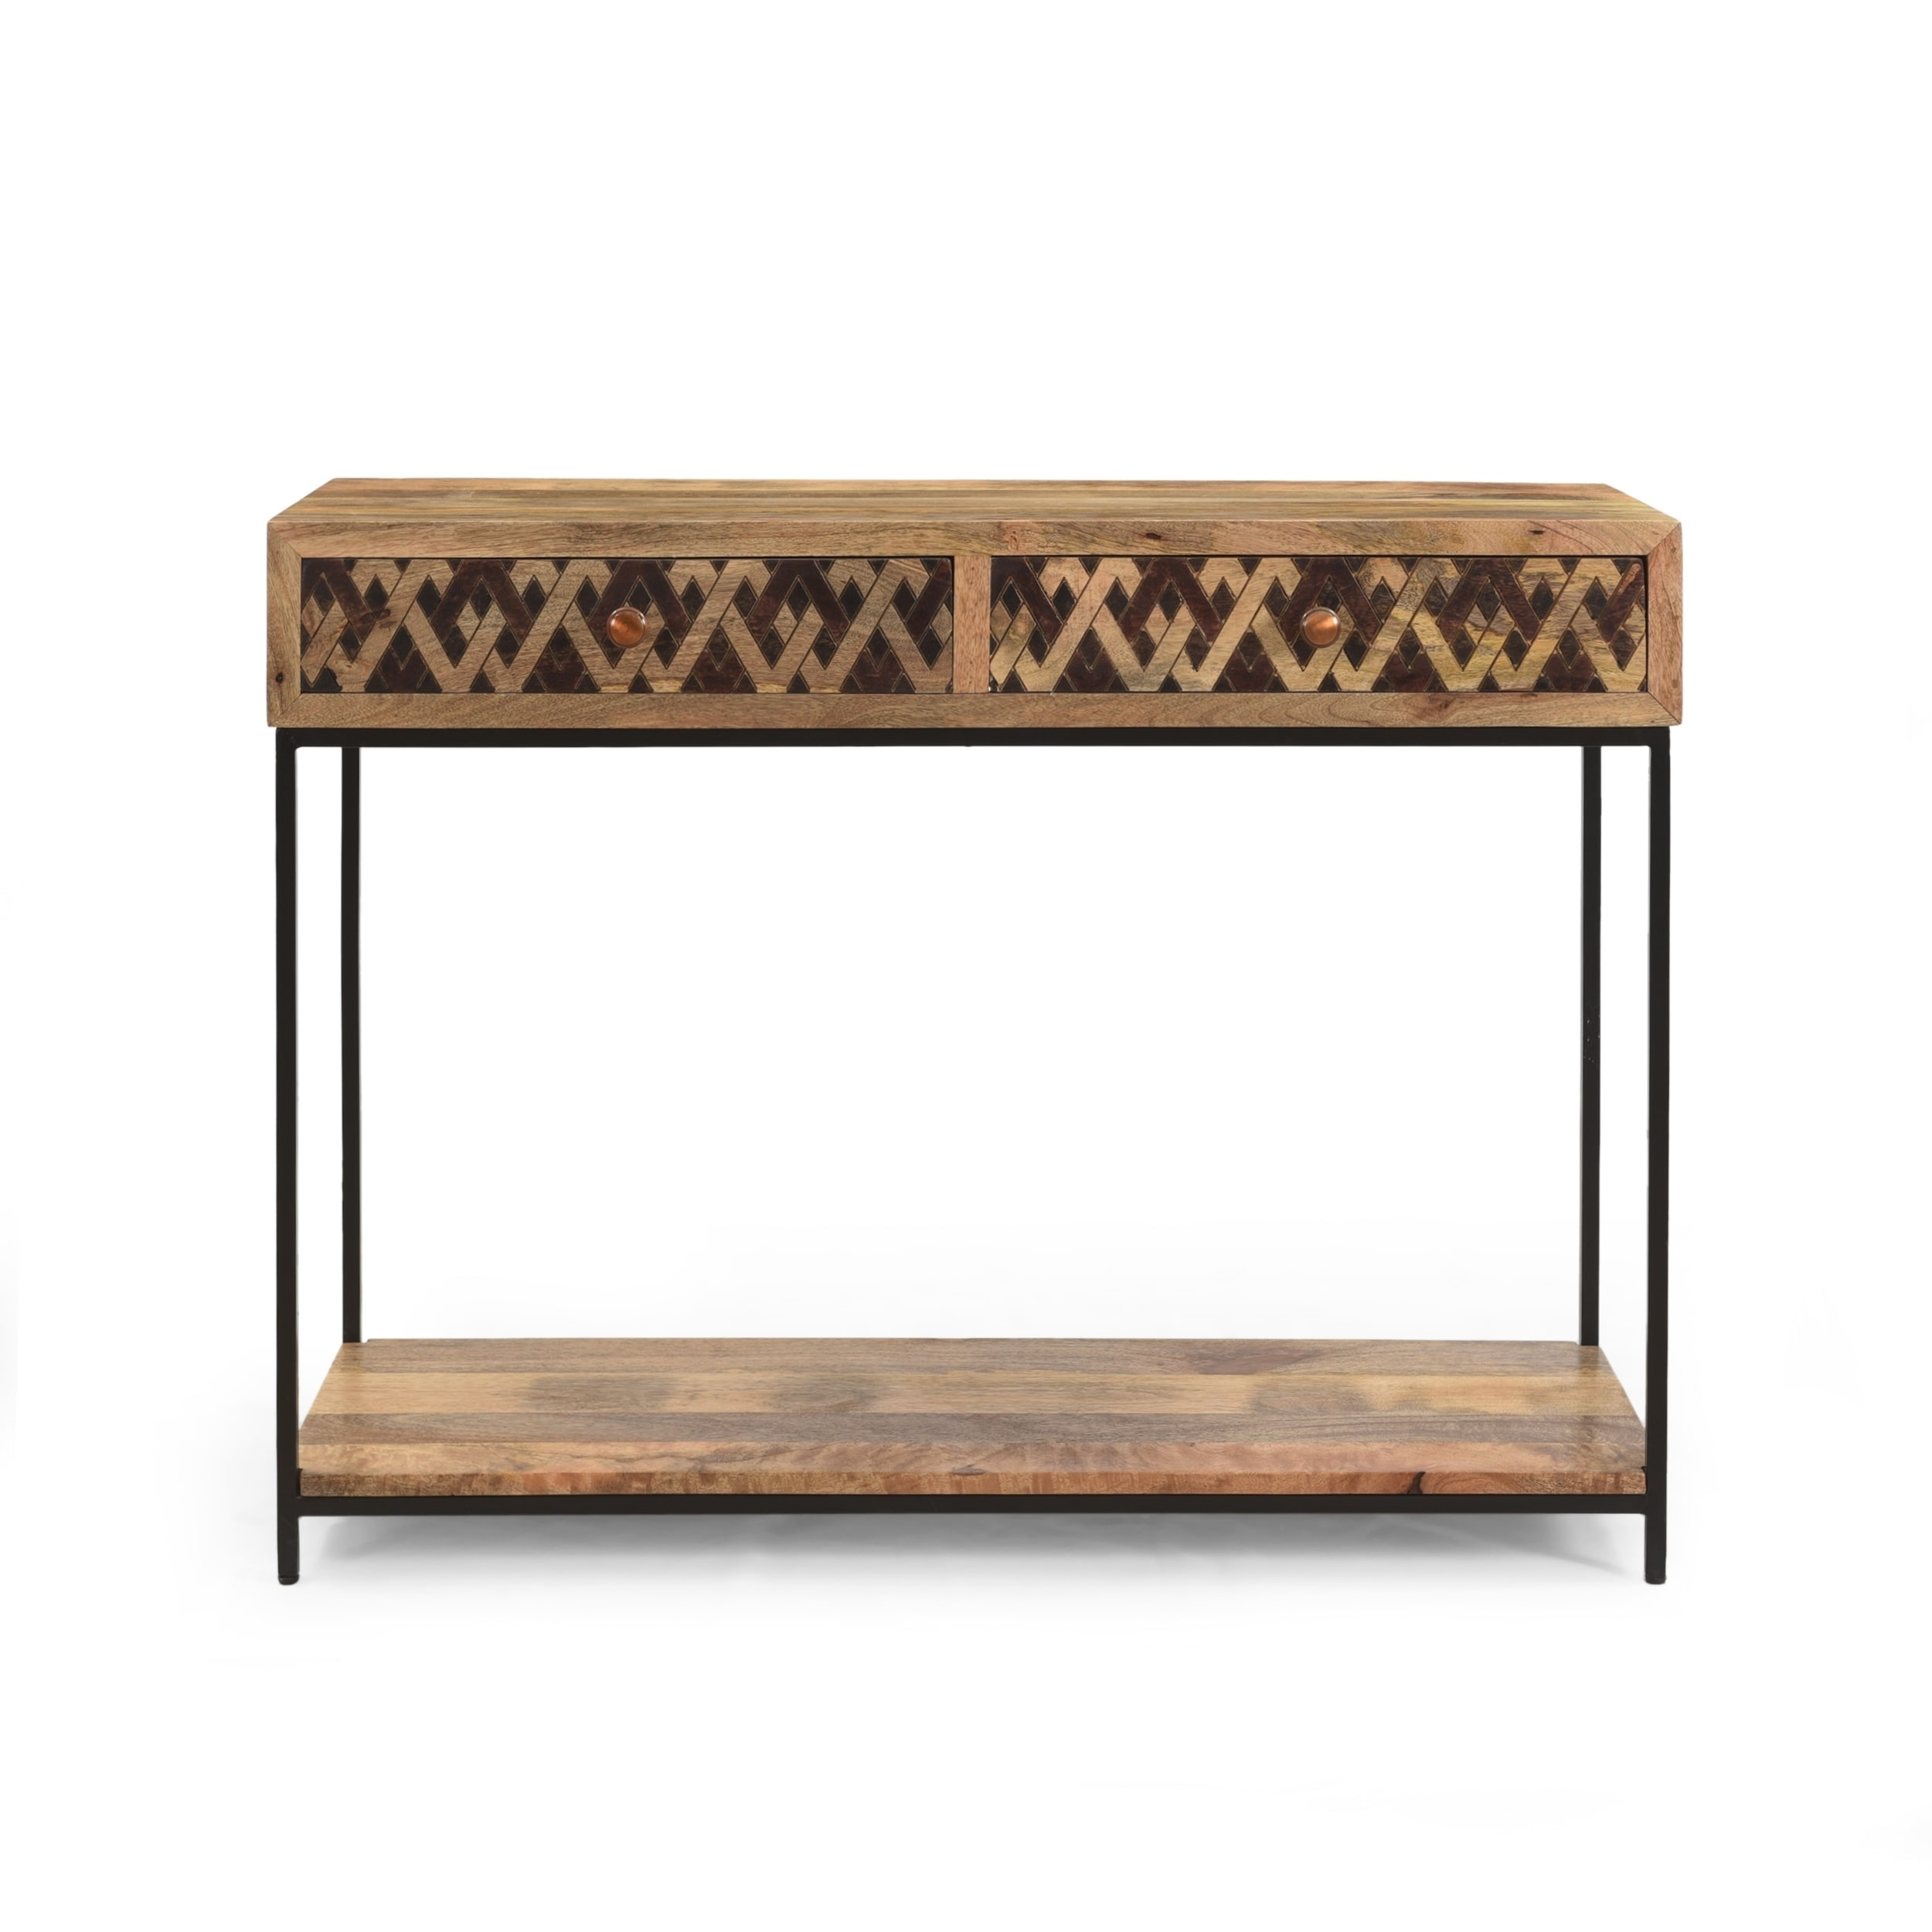 Pentland Boho Console Table By Christopher Knight Home 42 00 W X 15 00 D X 32 00 H Overstock 30593931